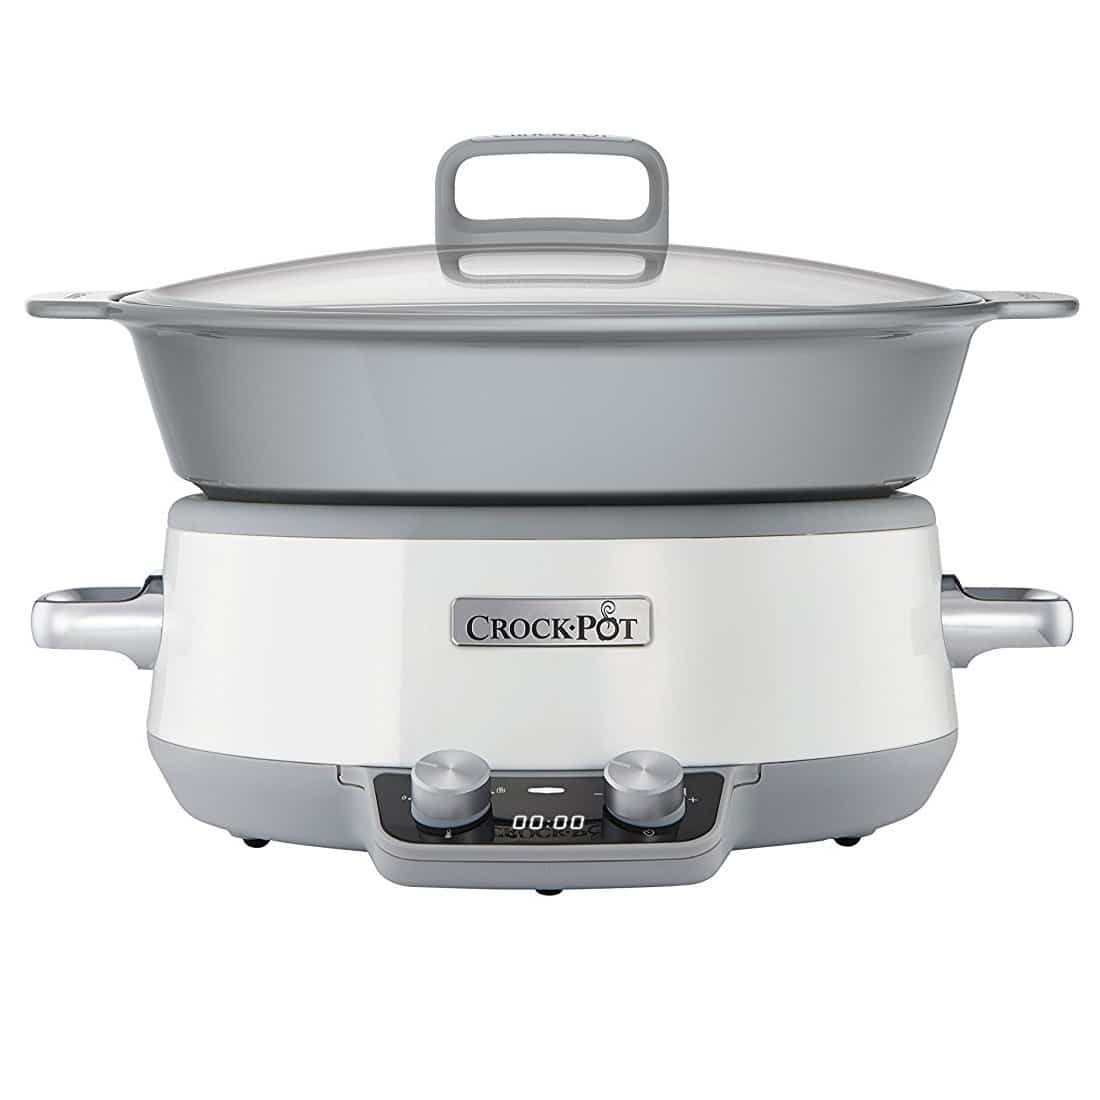 CROCK-POT SLOW COOKER DURACERAMIC WHITE 6L (For 8)